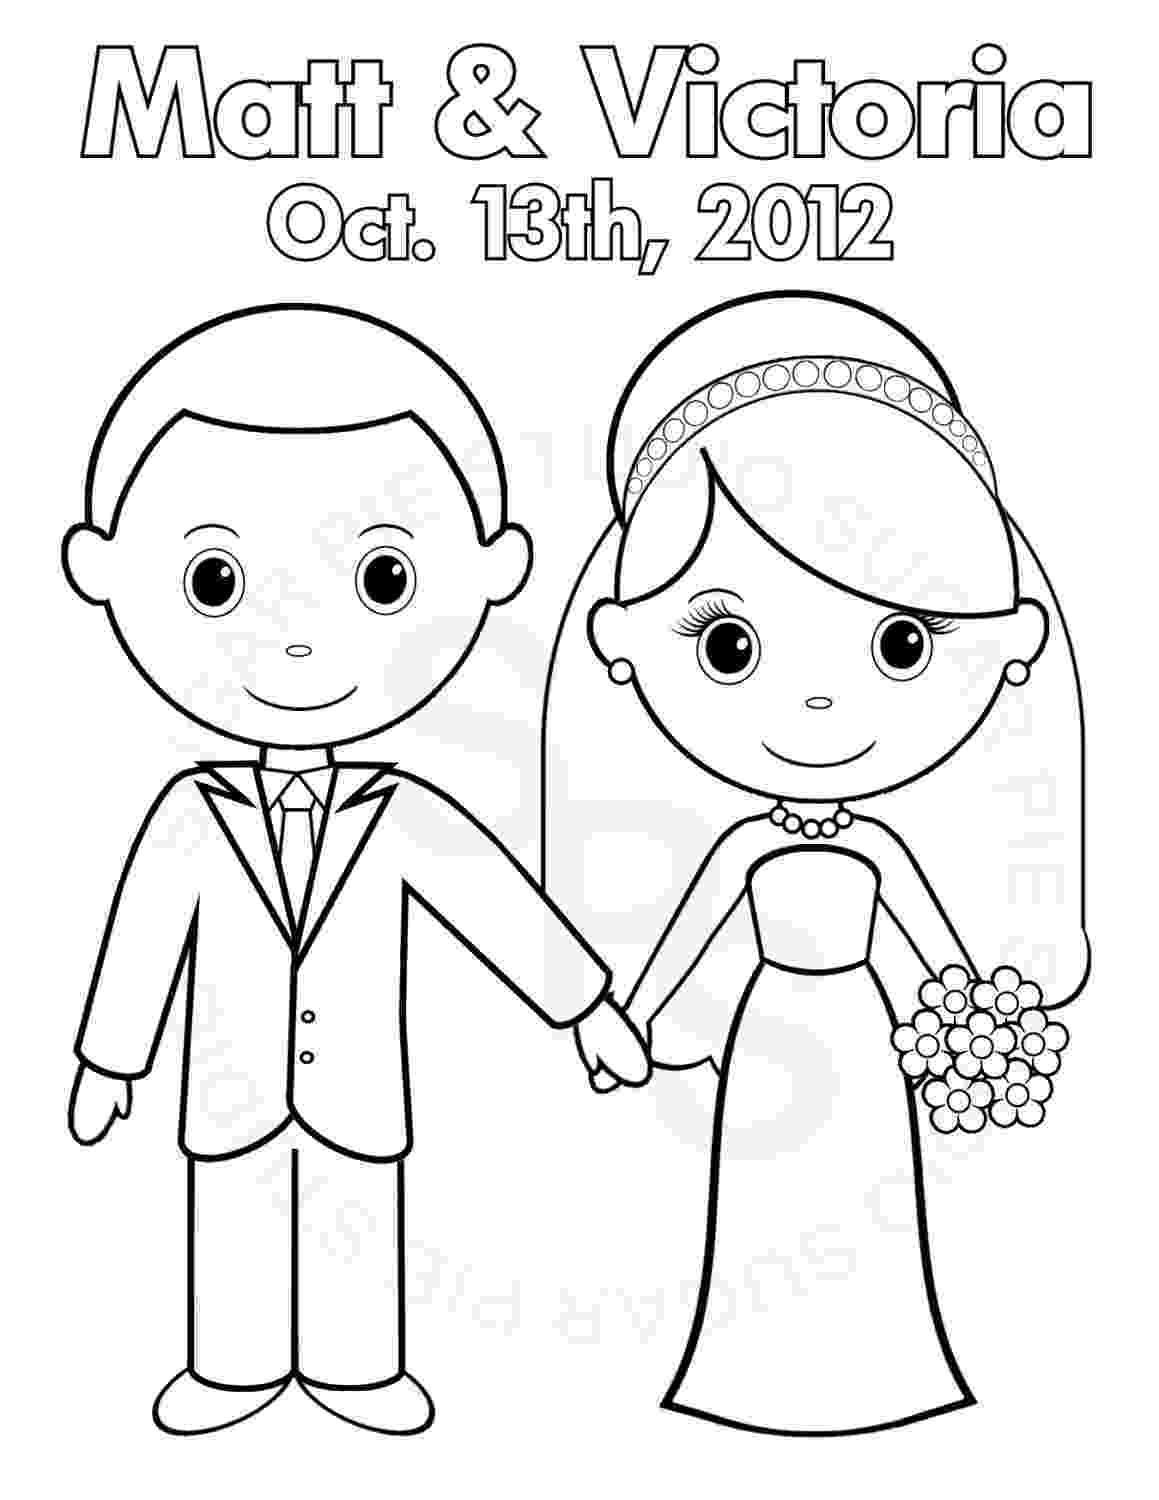 wedding coloring book free personalized coloring pages for kids free coloring wedding coloring book